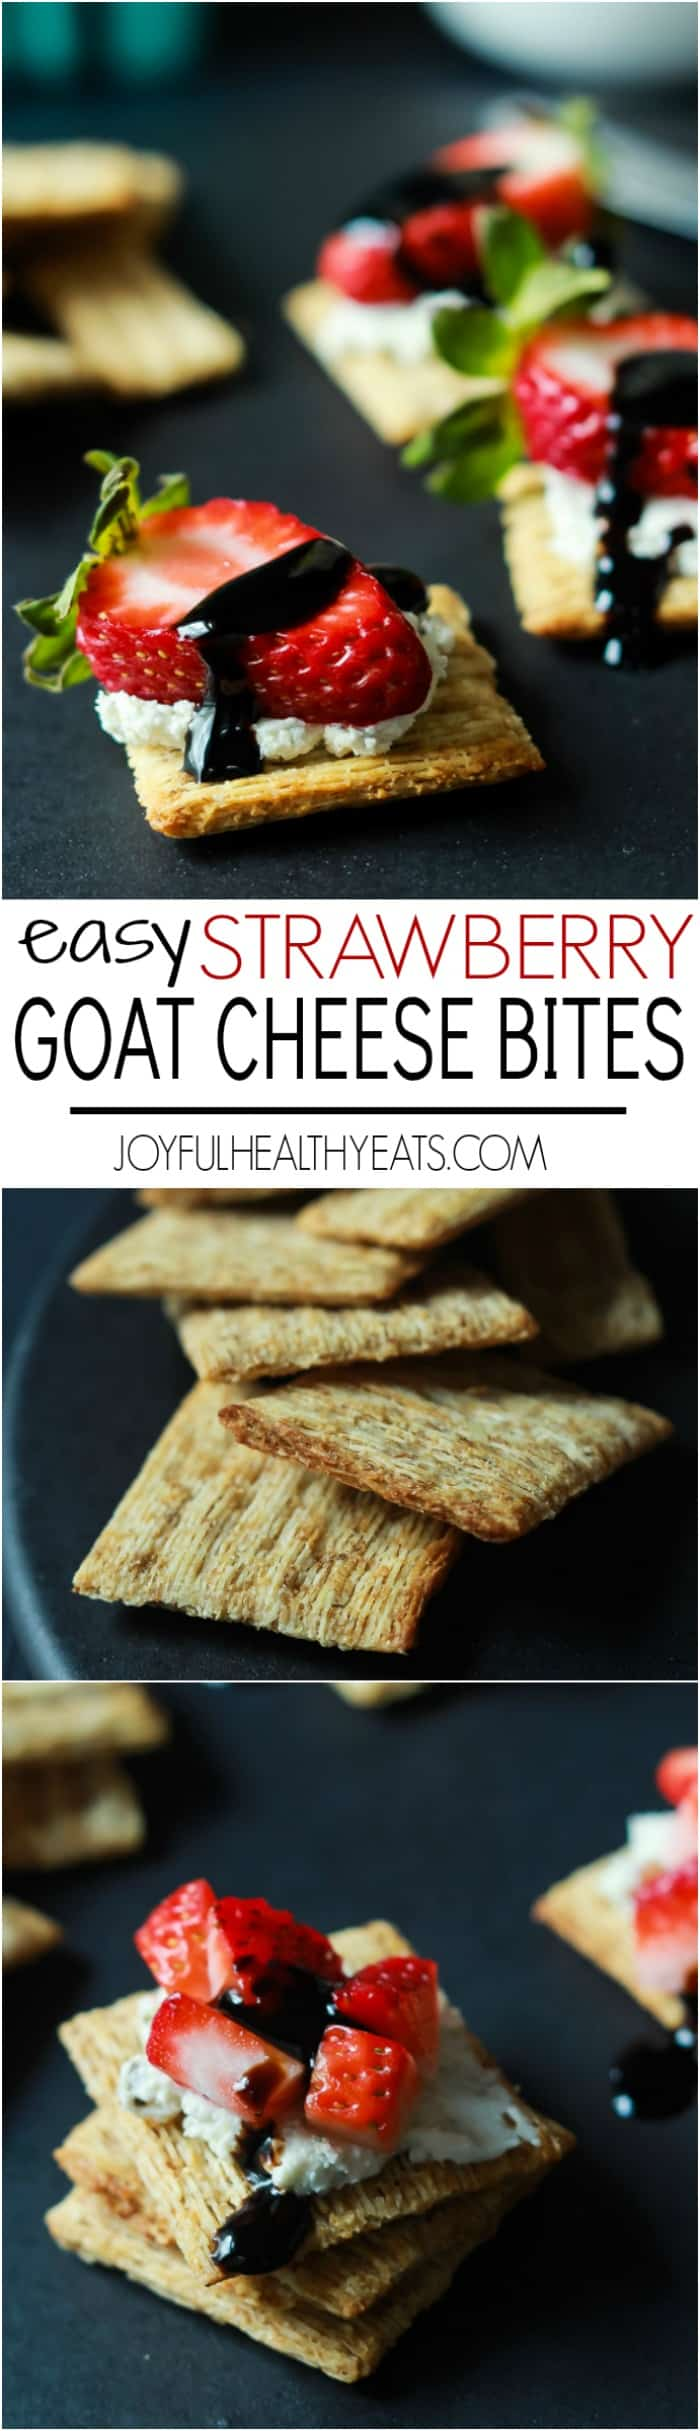 Recipe collage for Easy Strawberry Goat Cheese Bites